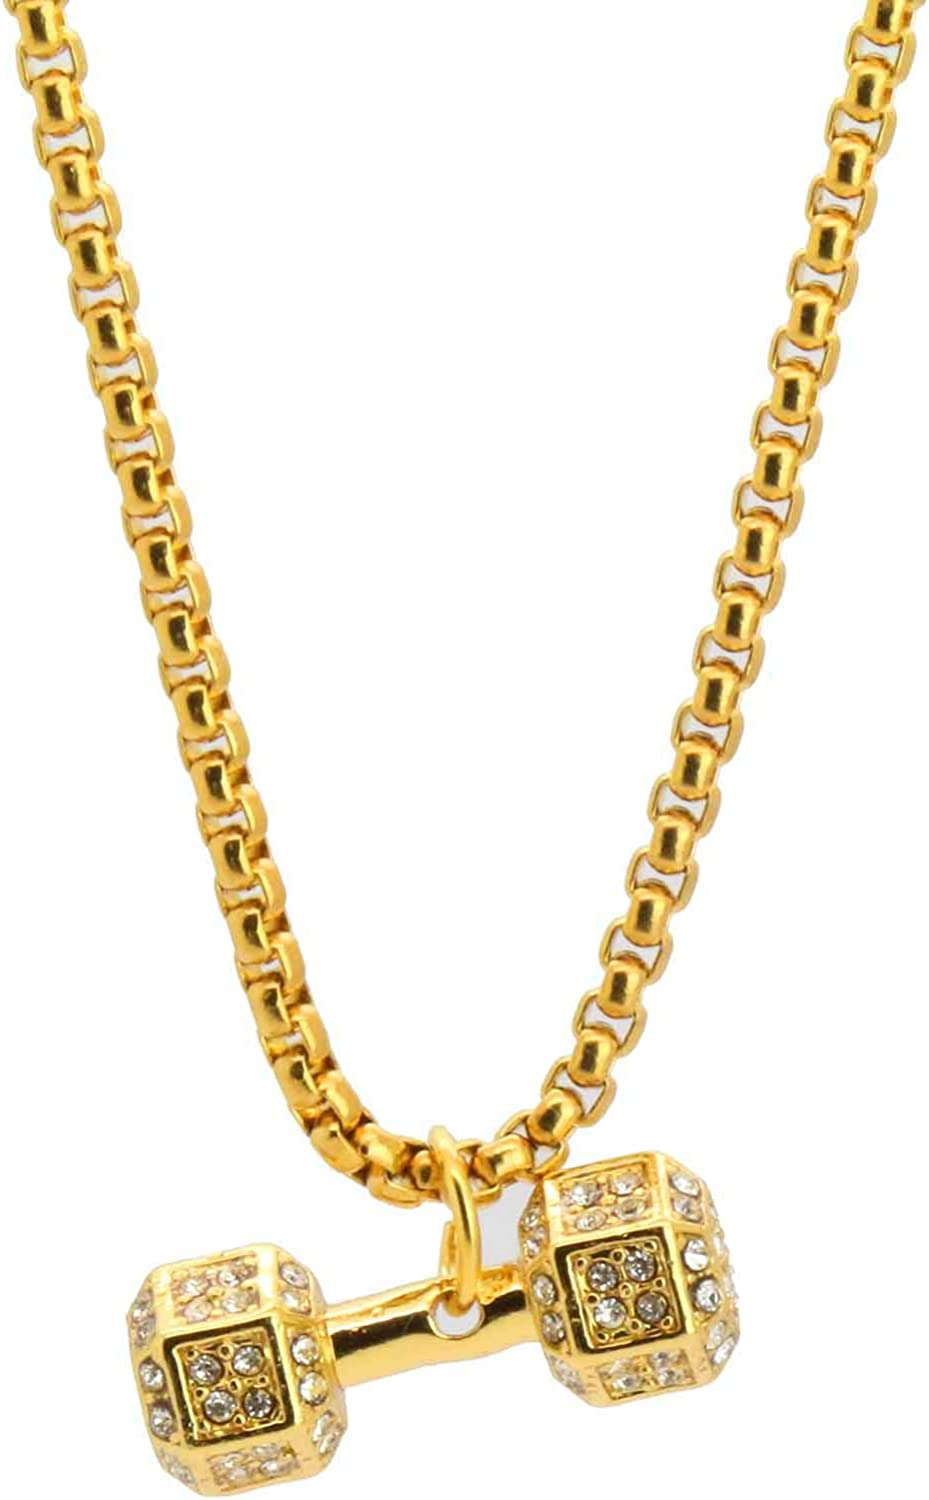 Cz Dumbbell Pendant Gold Stainless Steel Necklace Round Box Link Chain